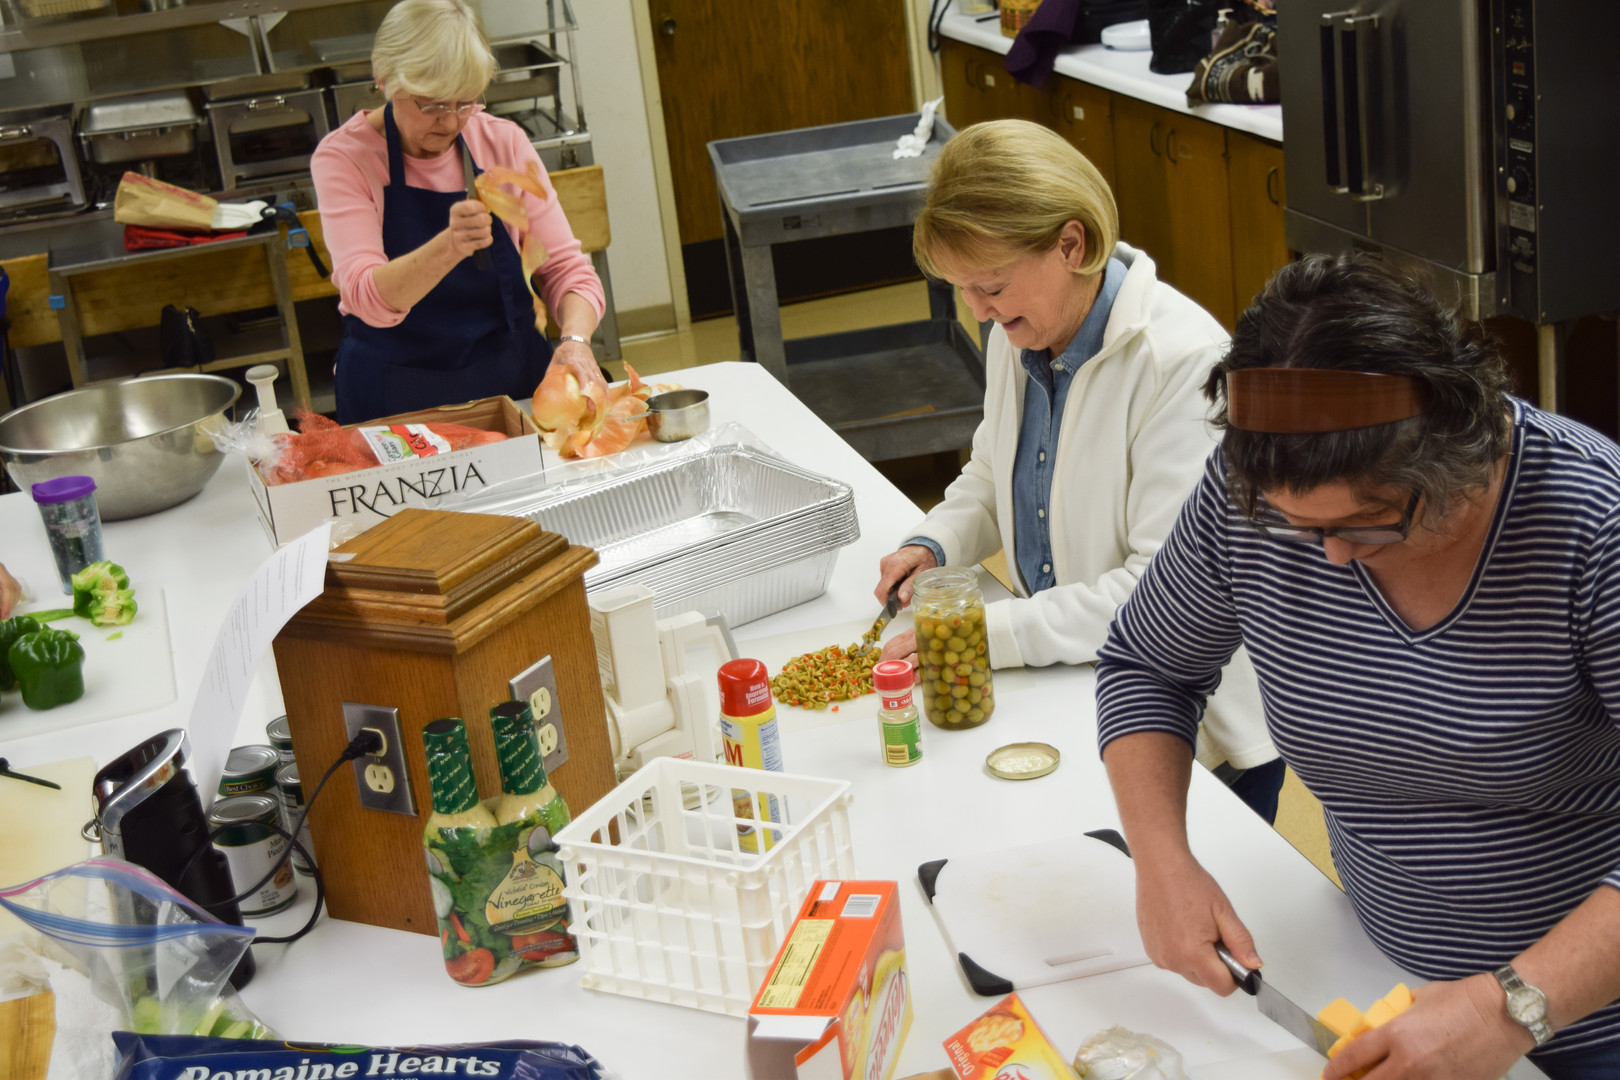 The Kitchen at Chapel Hill prepares thousands of meals every year.